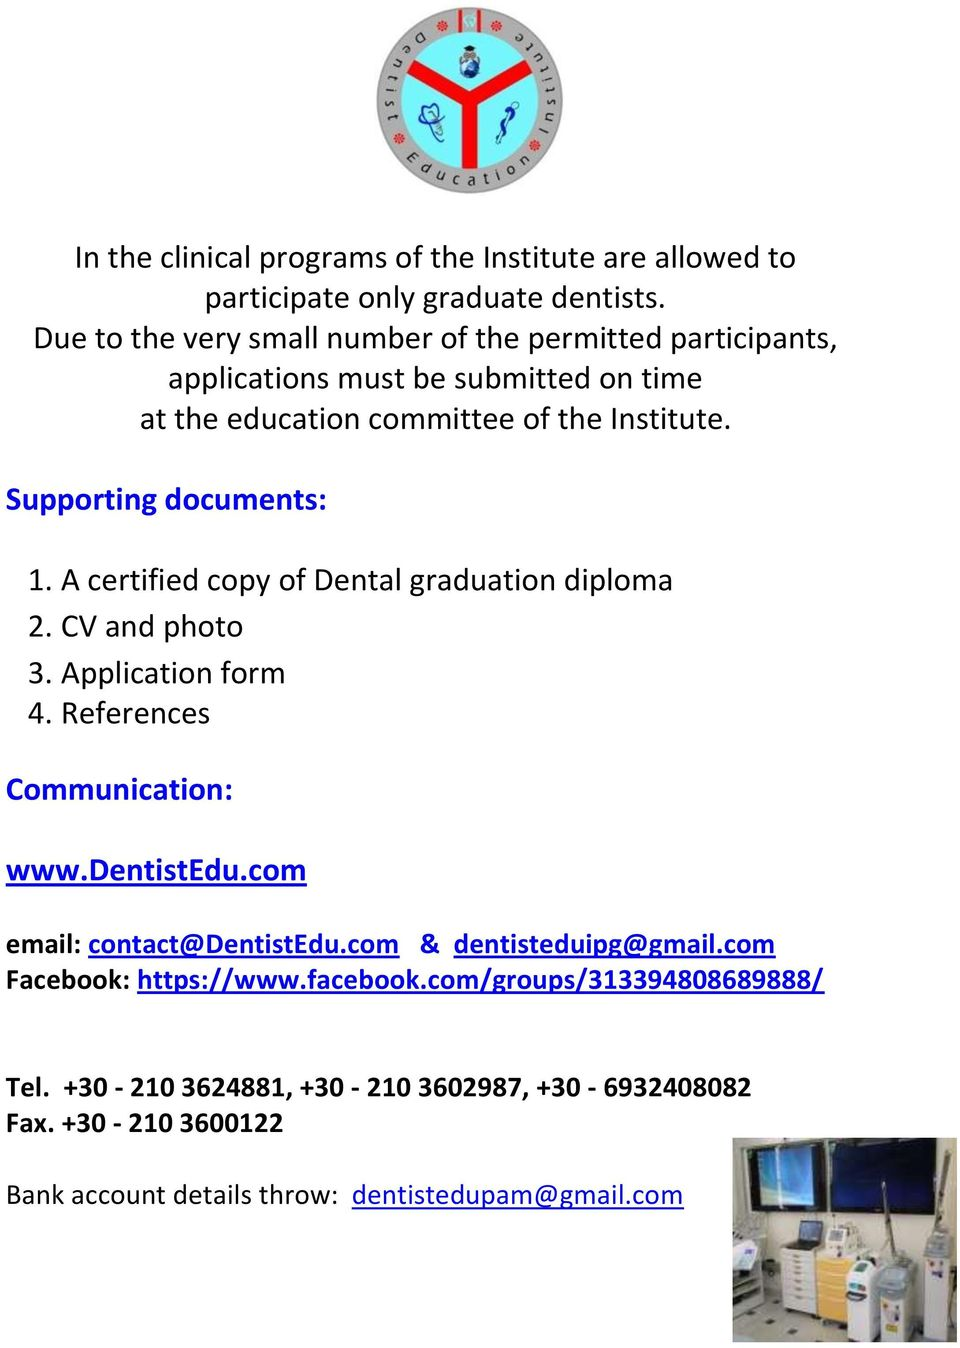 Supporting documents: 1. A certified copy of Dental graduation diploma 2. CV and photo 3. Application form 4. References Communication: www.dentistedu.